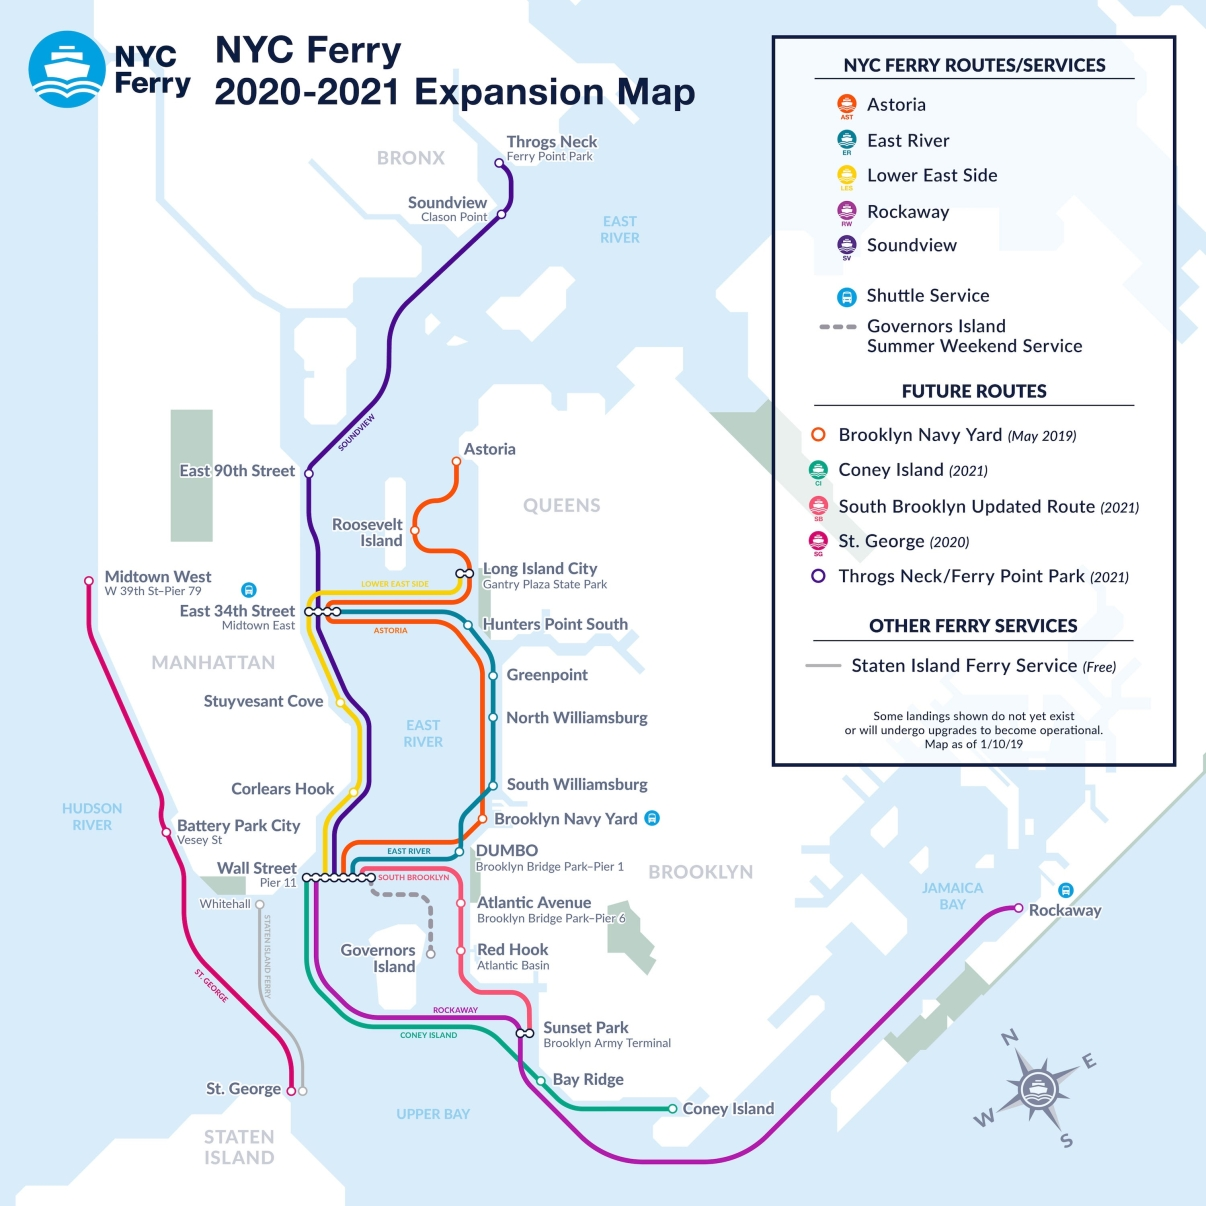 2020 NYC Ferry Expansion